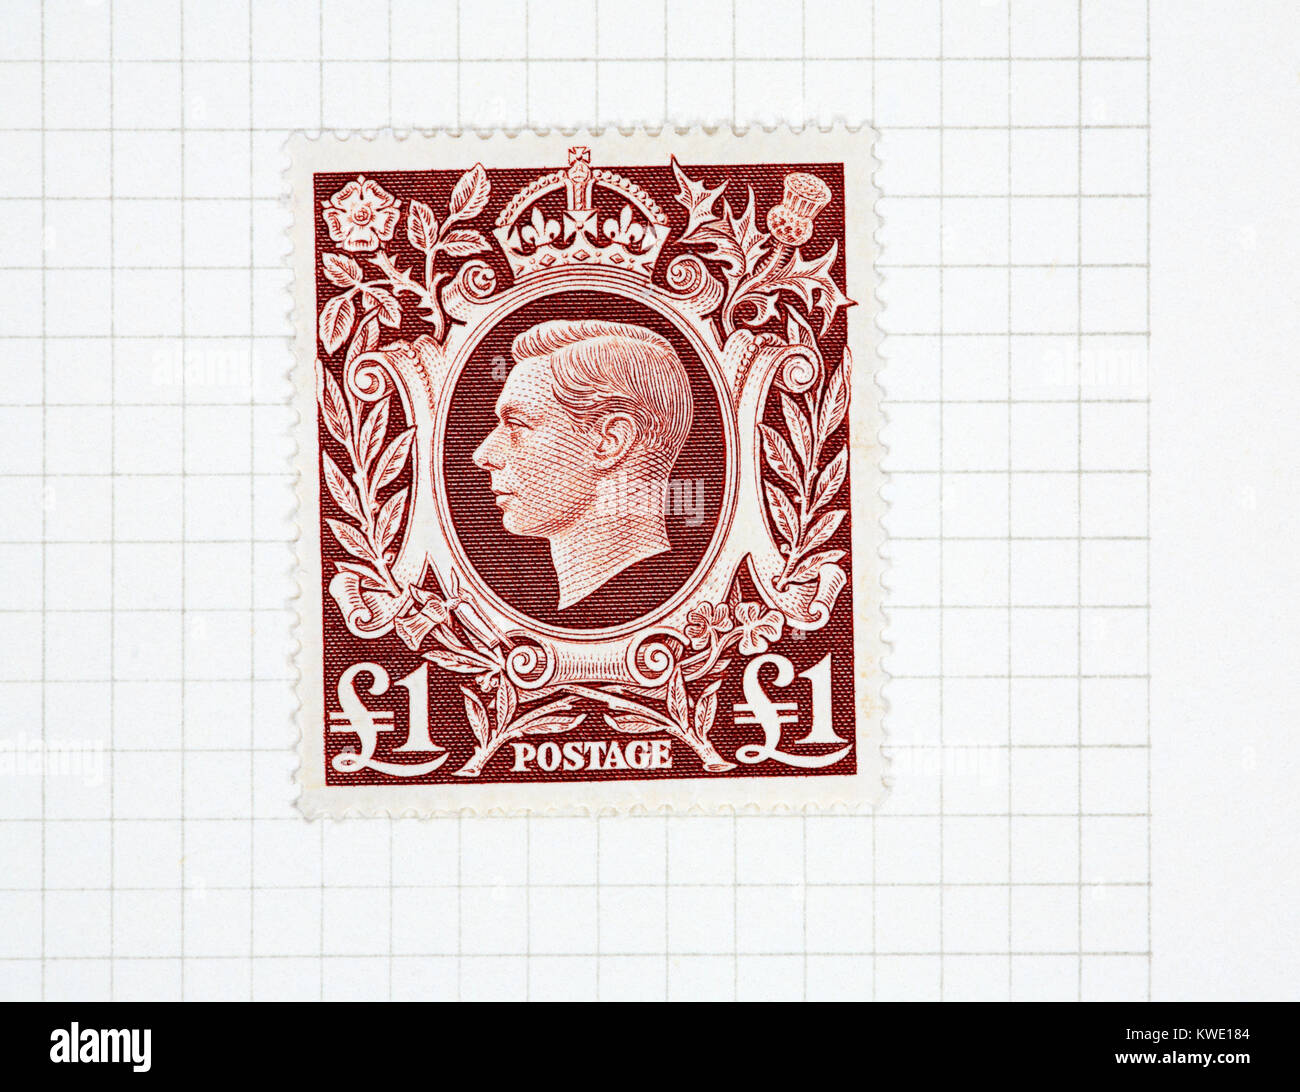 A mint King George VI £1 brown stamp of 1939-48 issue from a collection of British stamps. - Stock Image